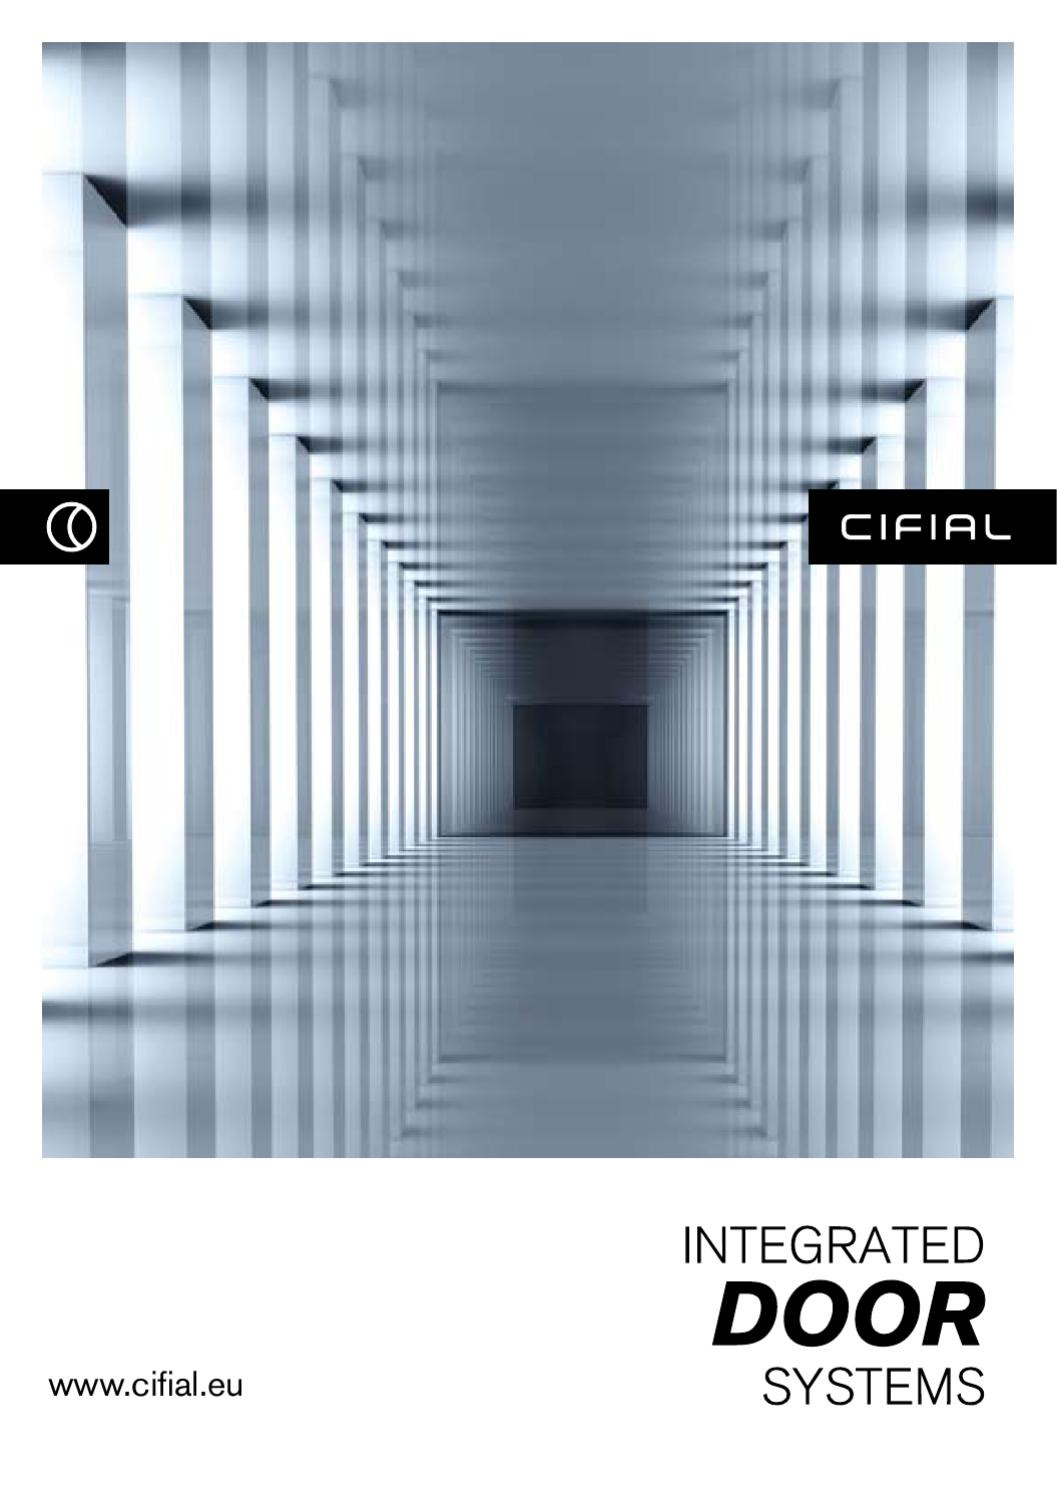 catalogo 2010 integrated door systems a5